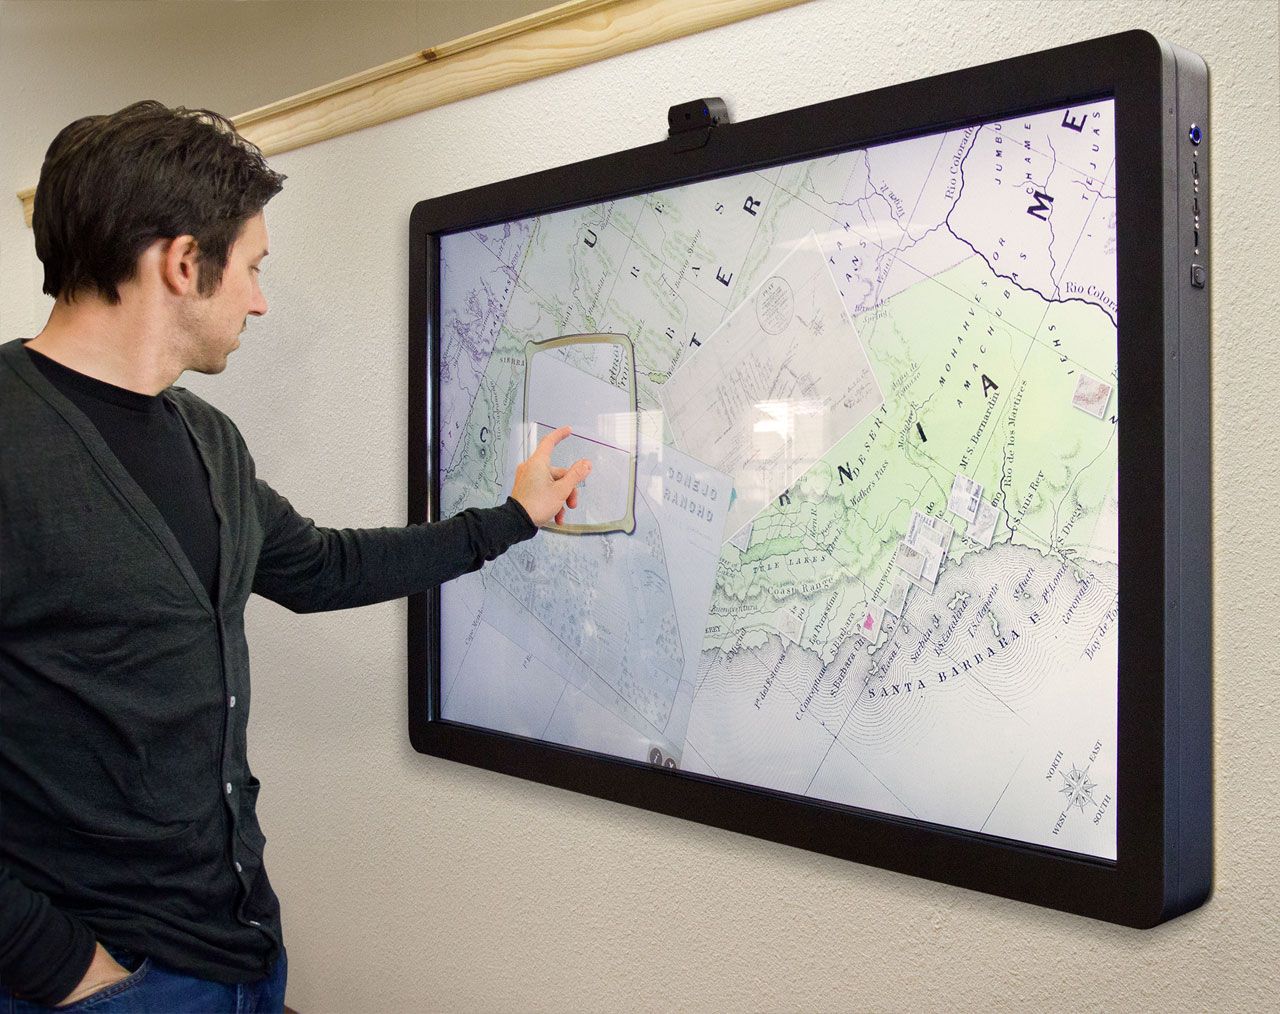 Ideum Releases MT65 Presenter Multitouch Wall Display